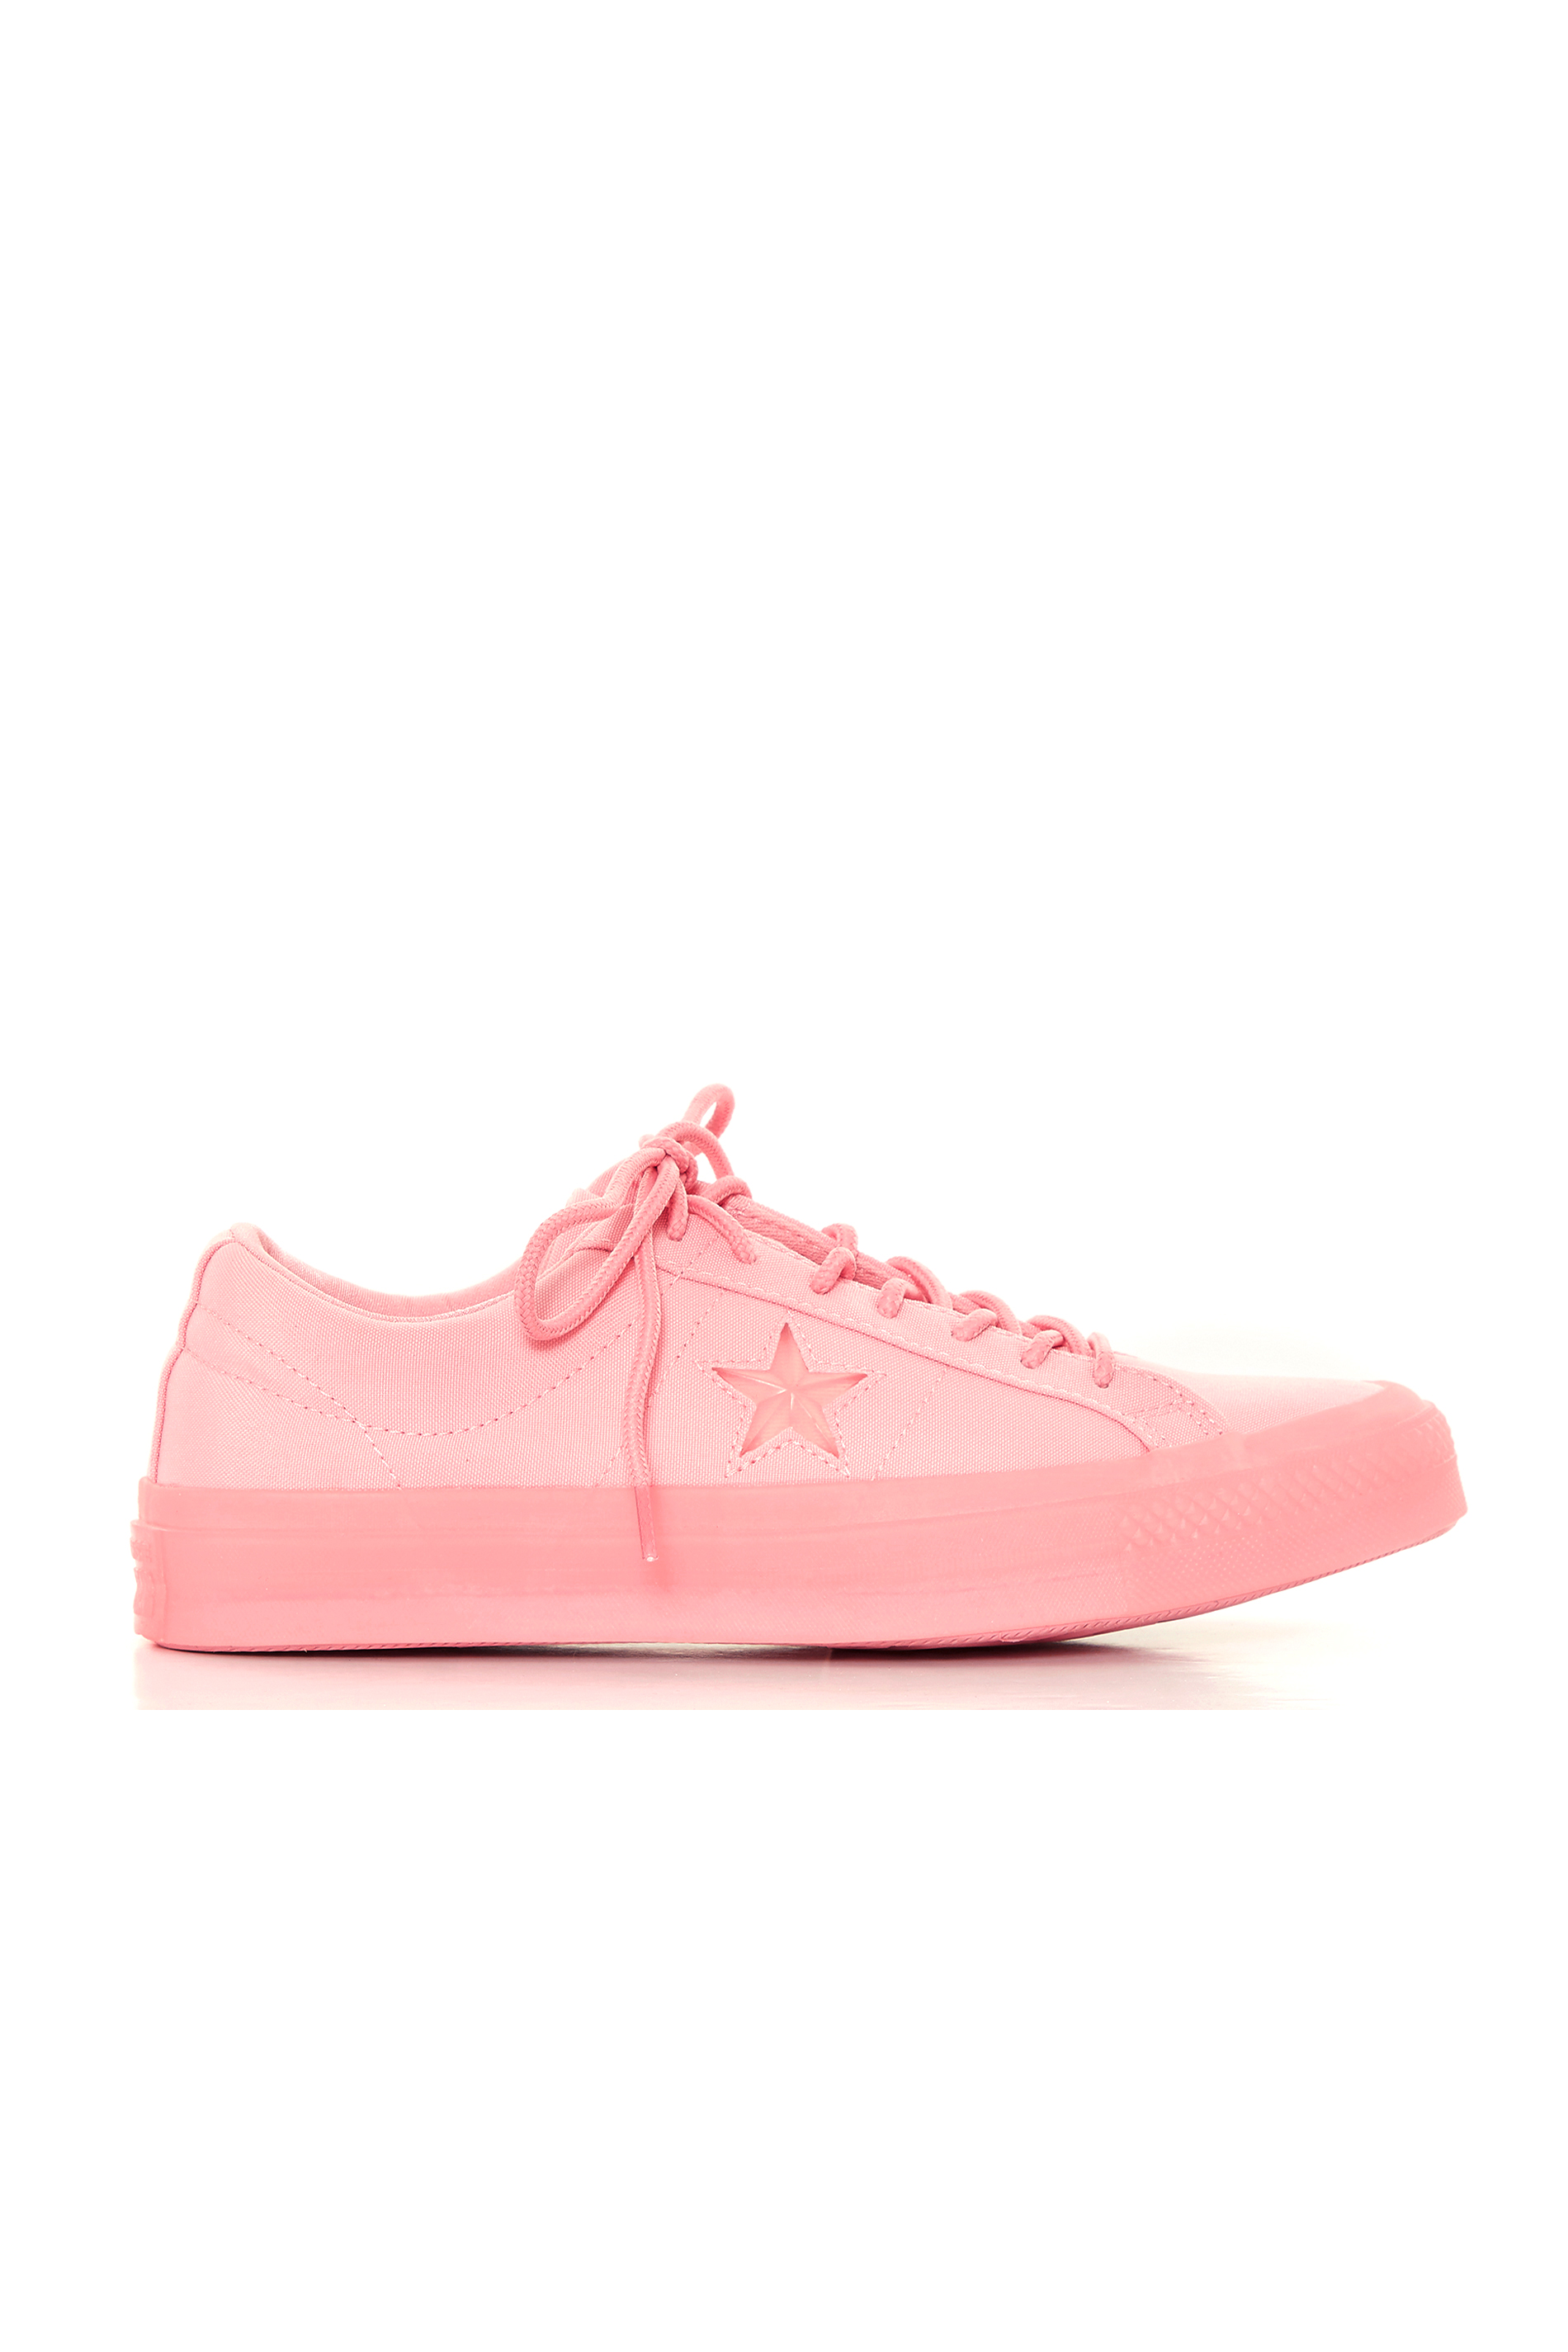 CHUCK TAYLOR Pink Lace Up Trainers